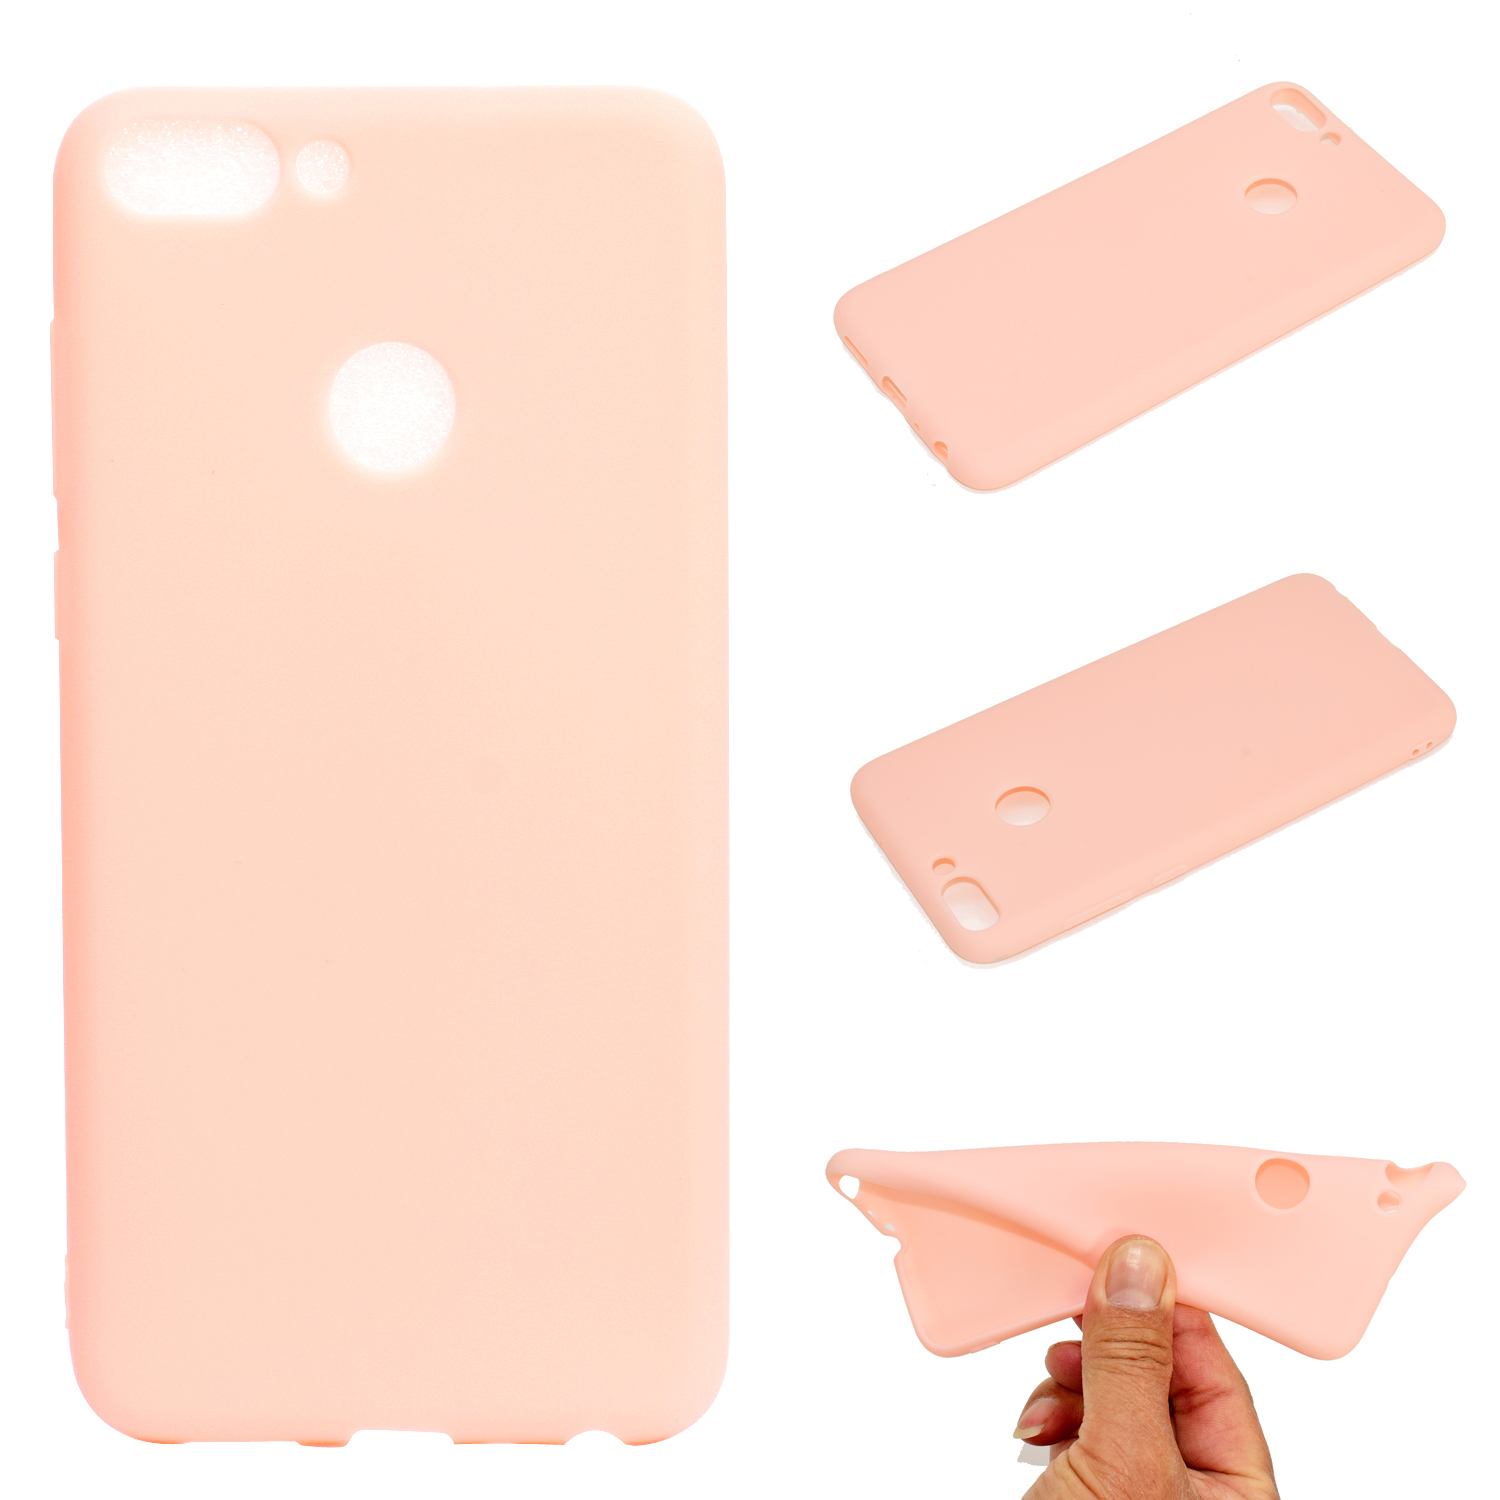 for HUAWEI Honor 9 lite Cute Candy Color Matte TPU Anti-scratch Non-slip Protective Cover Back Case Light pink